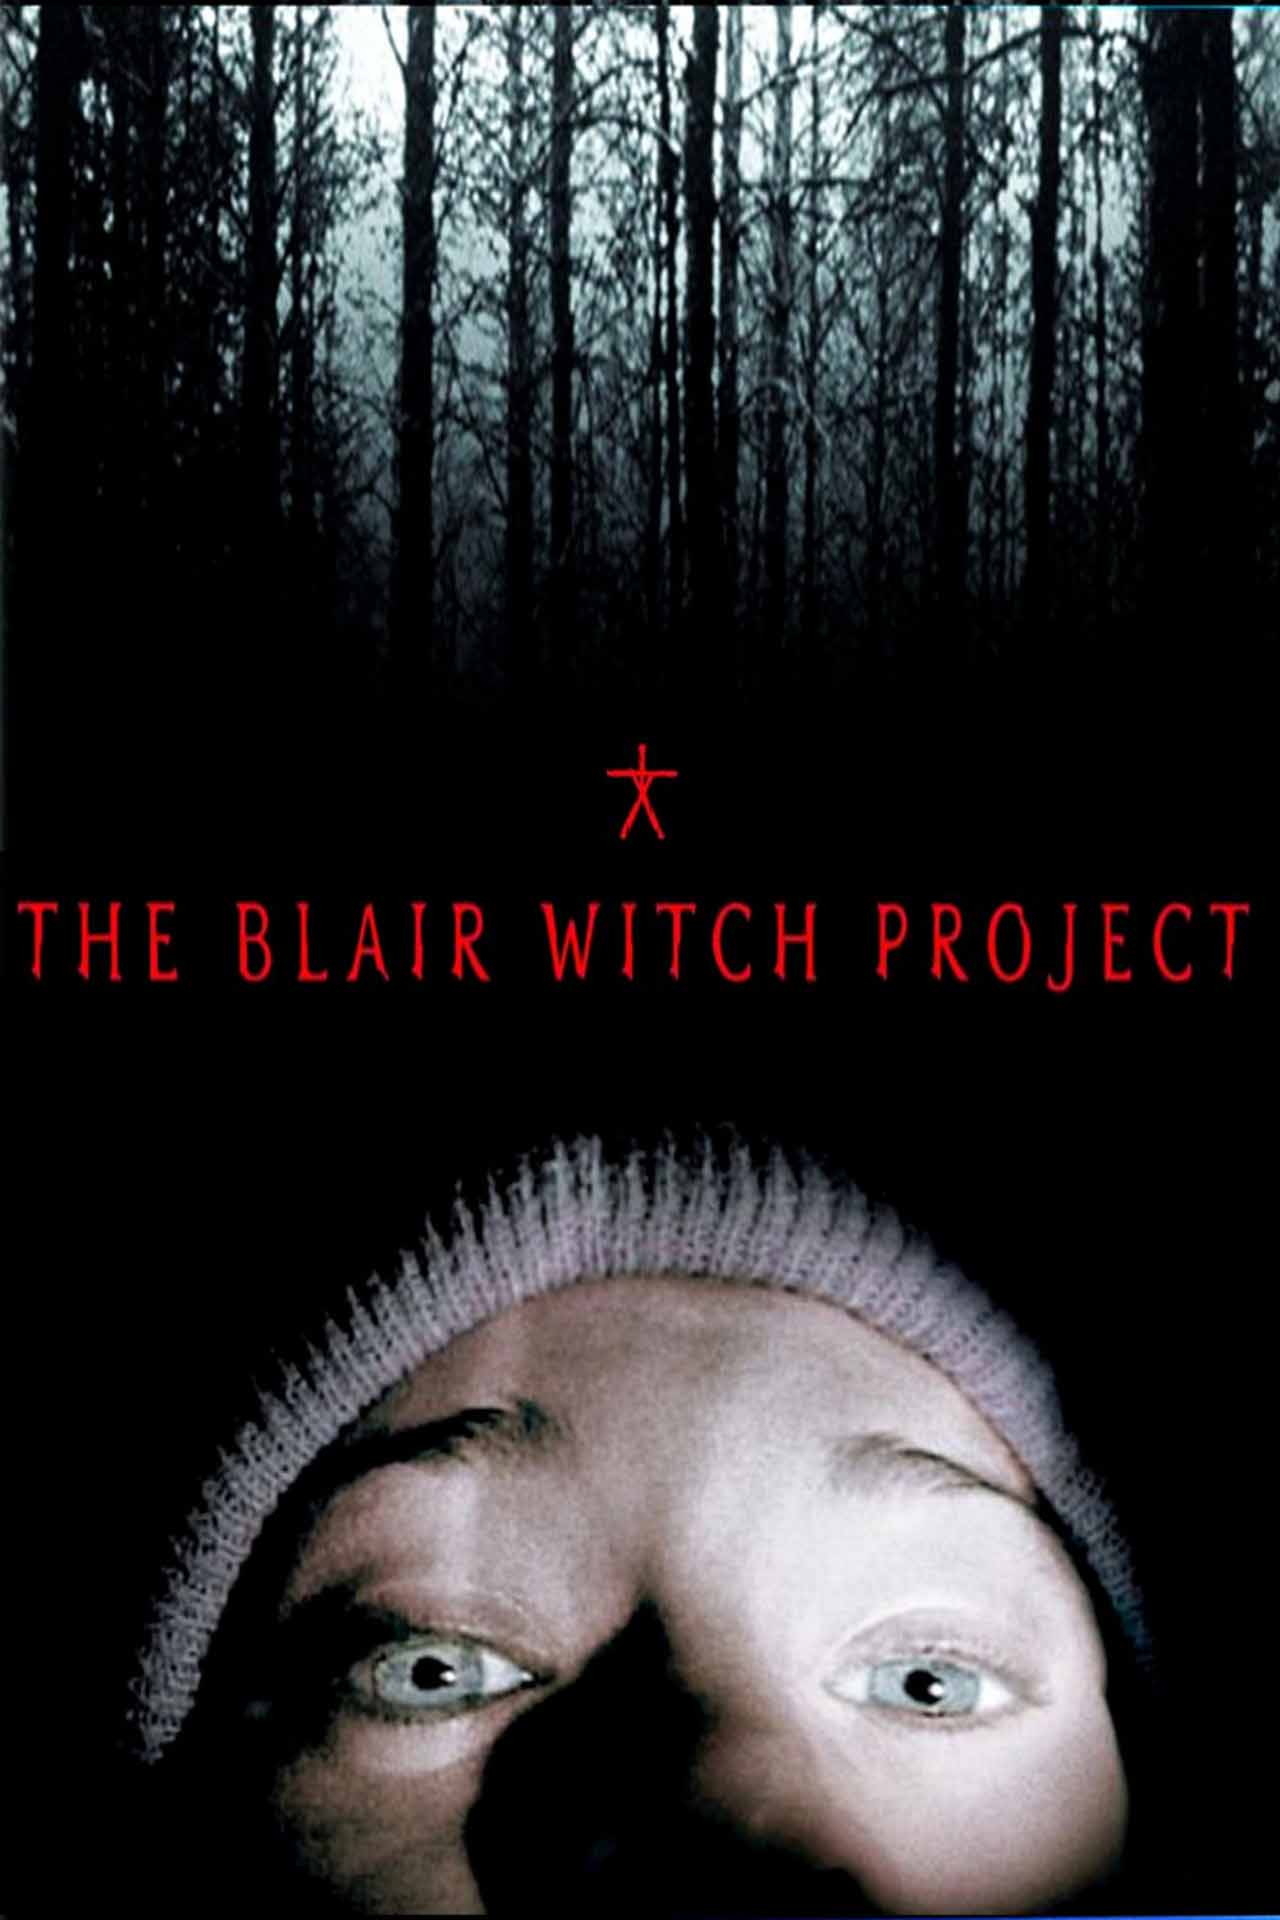 the blair witch project full movie Daniel myrick and eduardo sánchez's the blair witch project  triumph of the  sundance scam: make a heartless home movie, get enough critics  by the  hysterical screaming of a female character too full of guilt and shame.